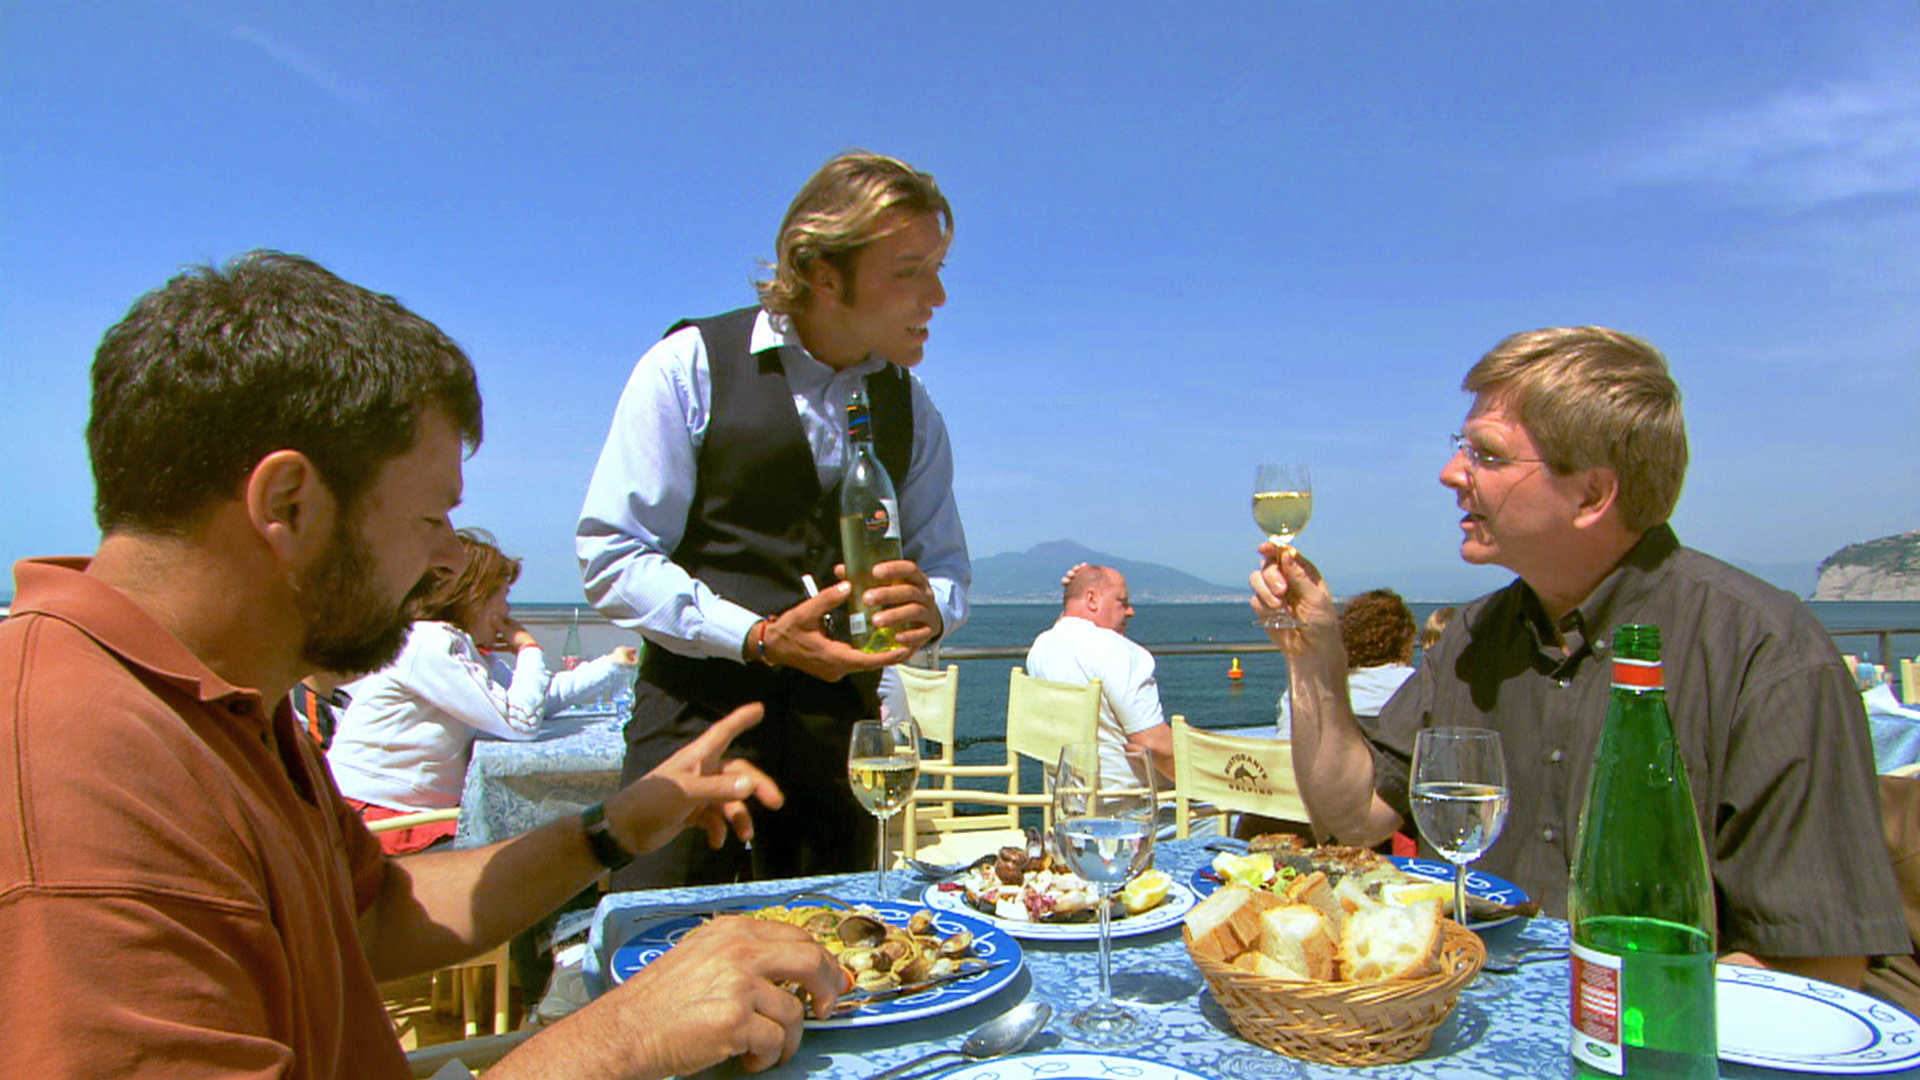 Rick Steves and Simon take lunch on the Amalfi Coast